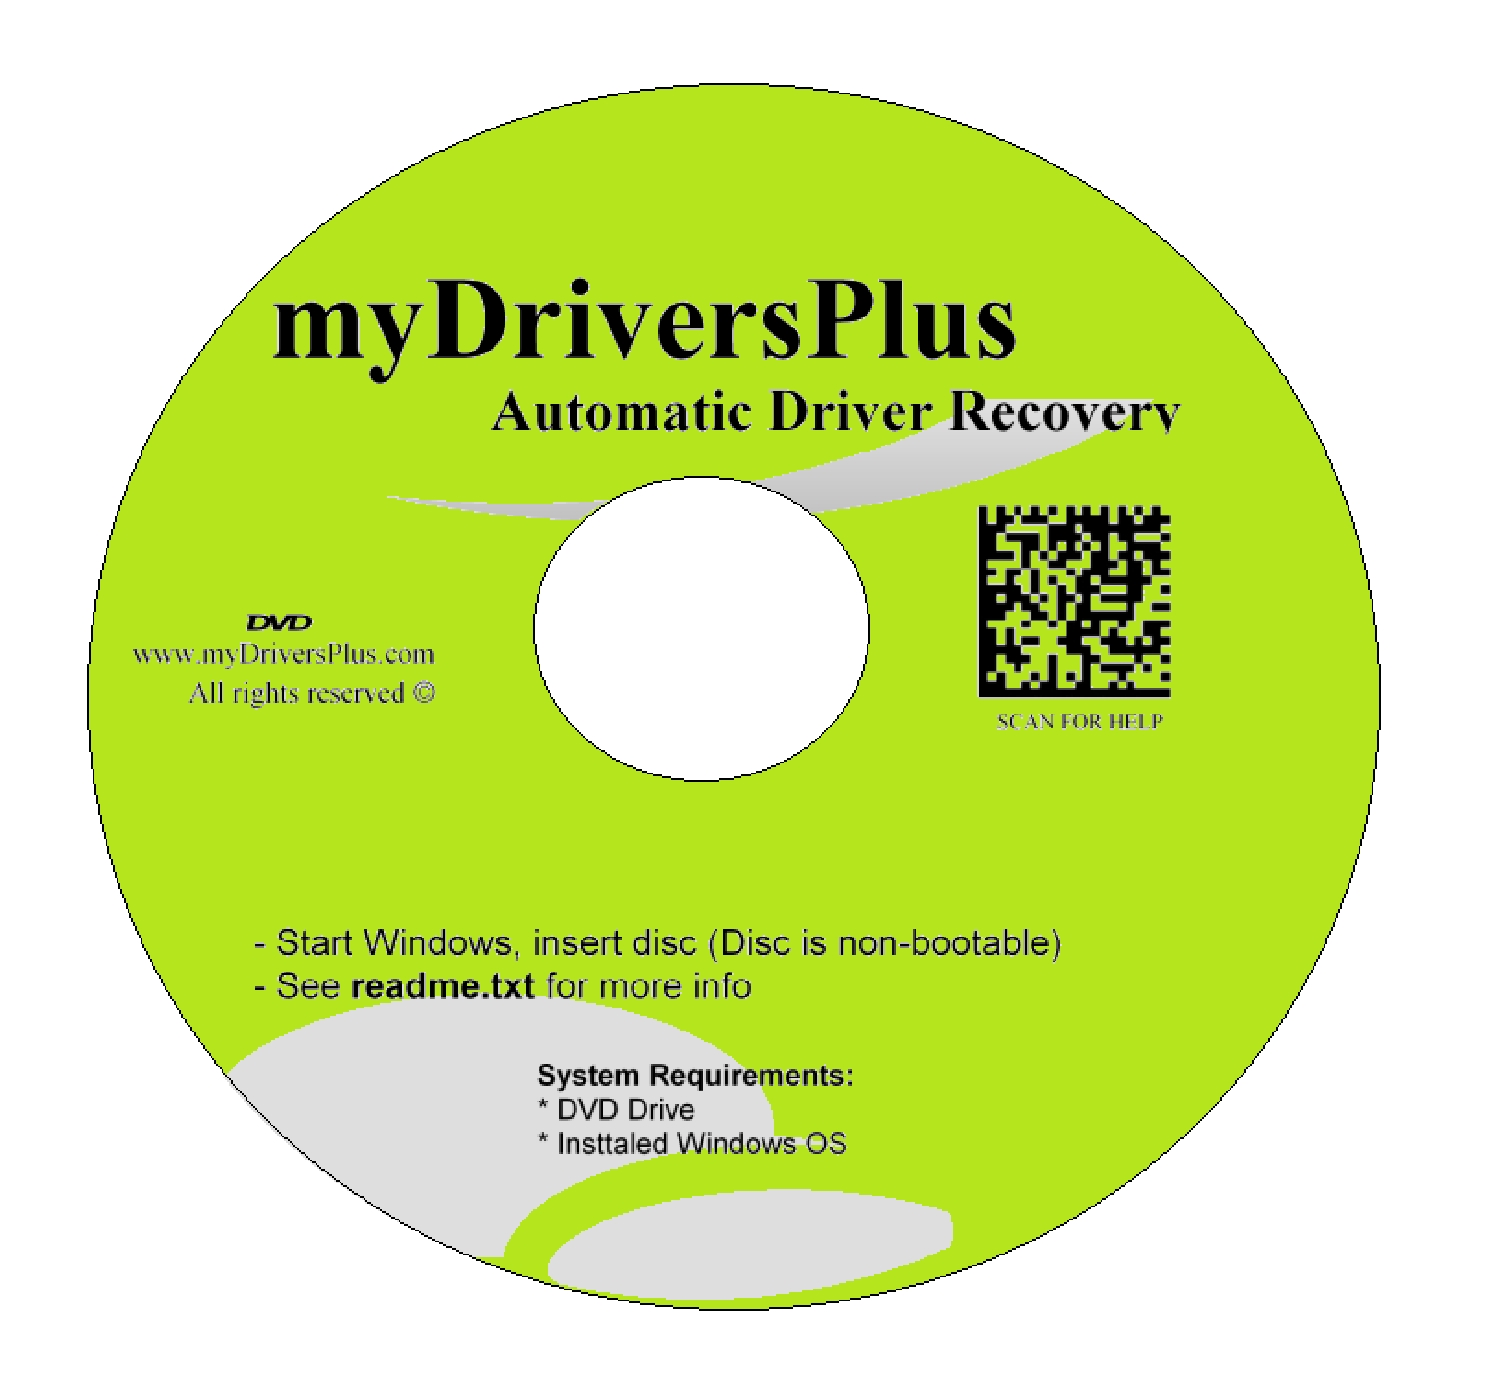 Windows 8.1 Universal Drivers Recovery Restore Resource Utilities Software with Automatic One-Click Installer Unattended for Internet, Wi-Fi, Ethernet, Video, Sound, Audio, USB, Devices, Chipset ...(